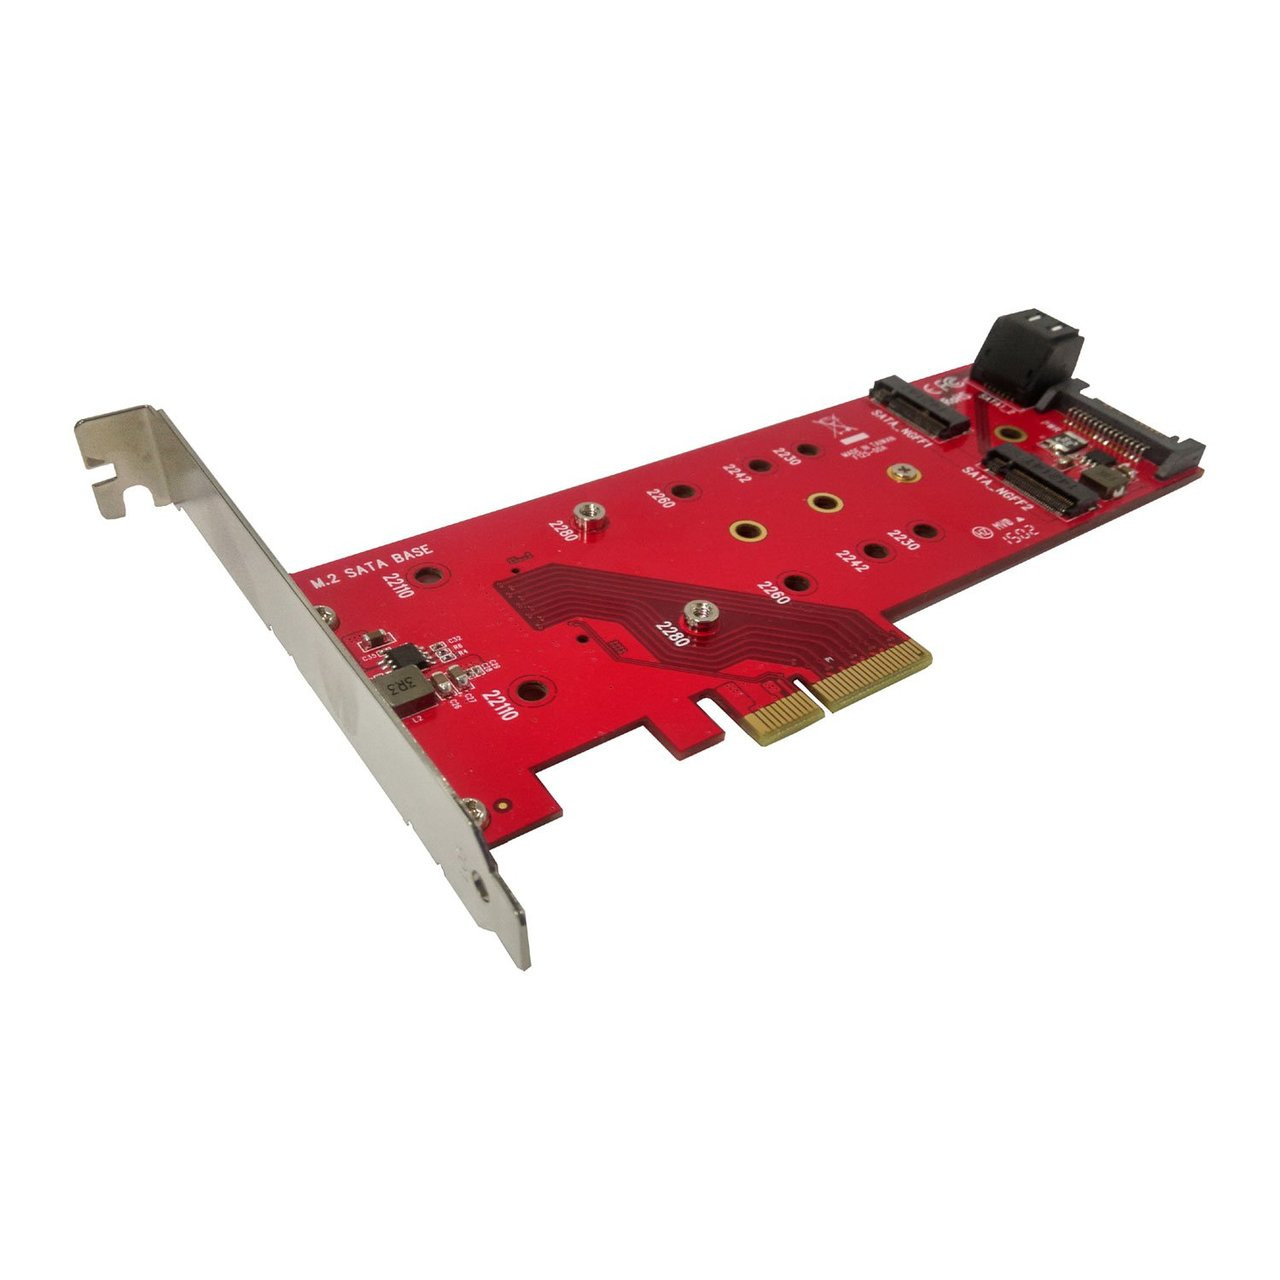 Lycom DT-125 1x PCIe M.2 SSD + 2x SATA M.2 SSD PCIe 3.0 x4 Low Profile Host Adapter Card